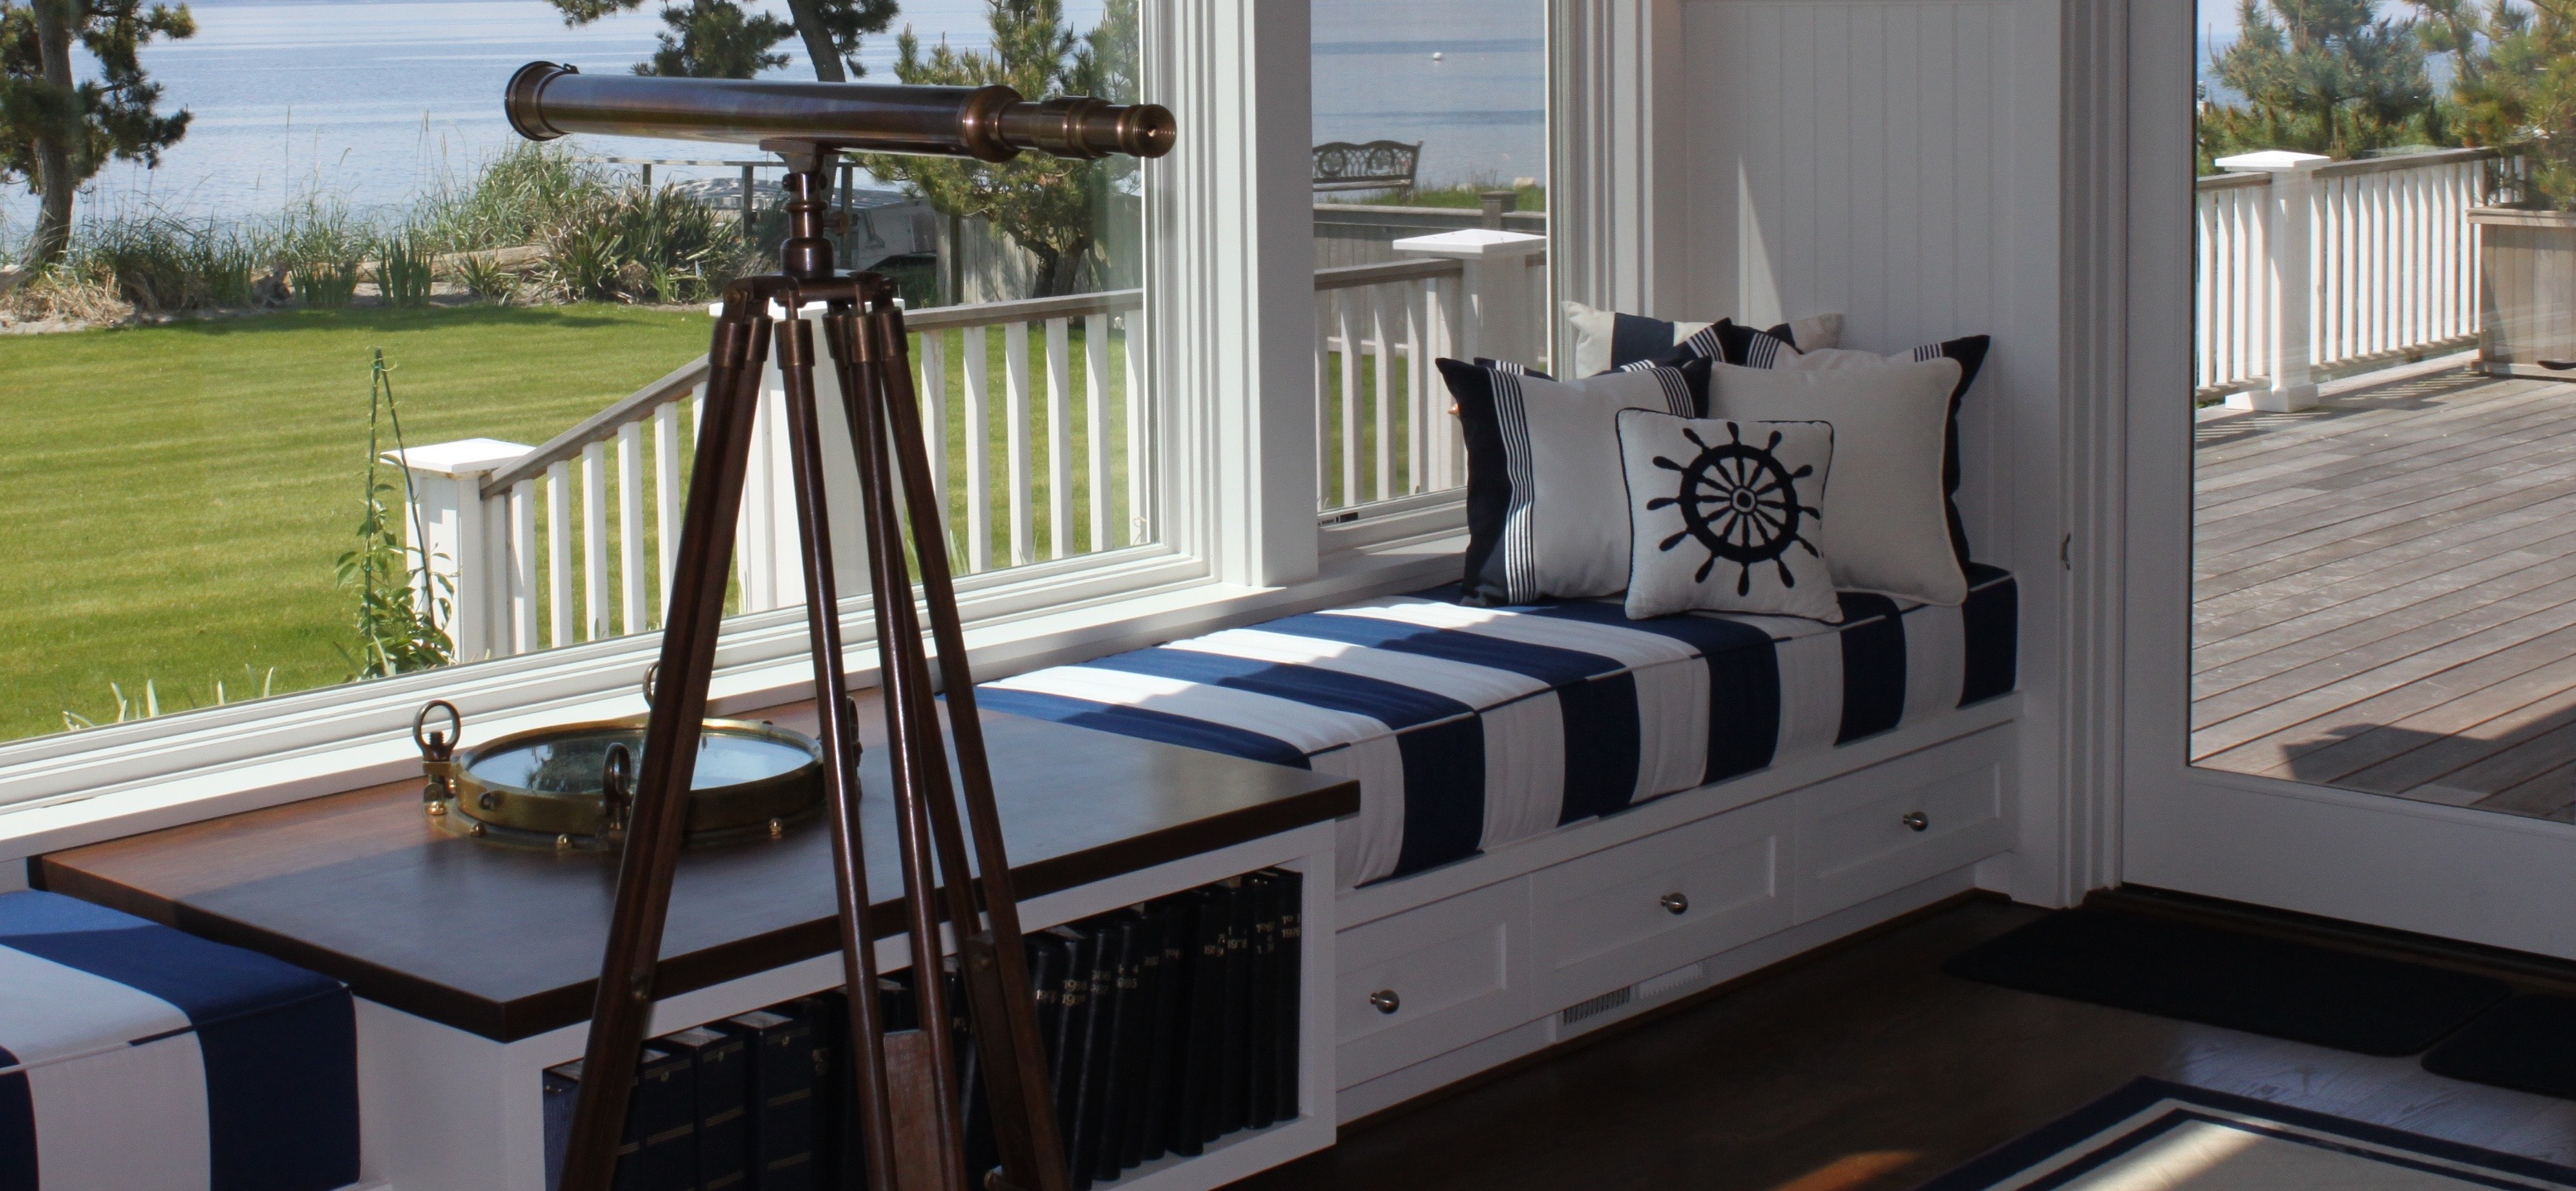 enjoyable design nautical bookends. 5 Interior Design  Decorating Tips for Creating a Nautical Theme